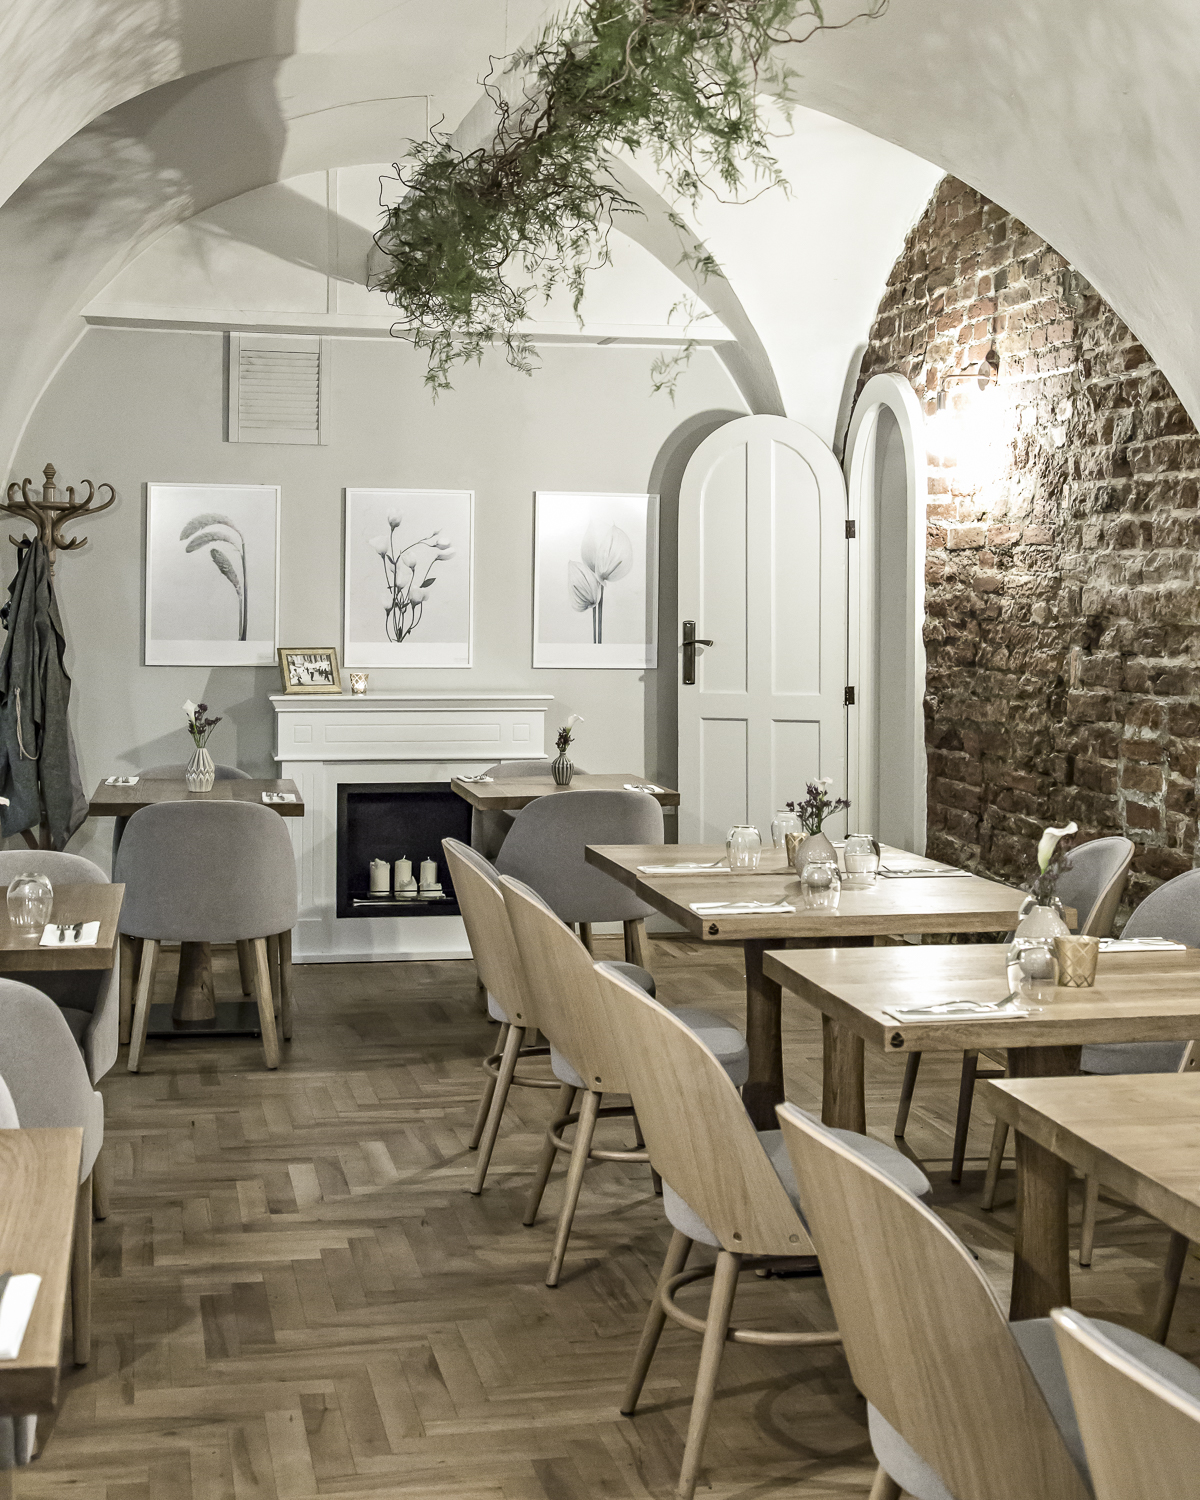 Great restaurant with a Scandinavian twist in Warsaw